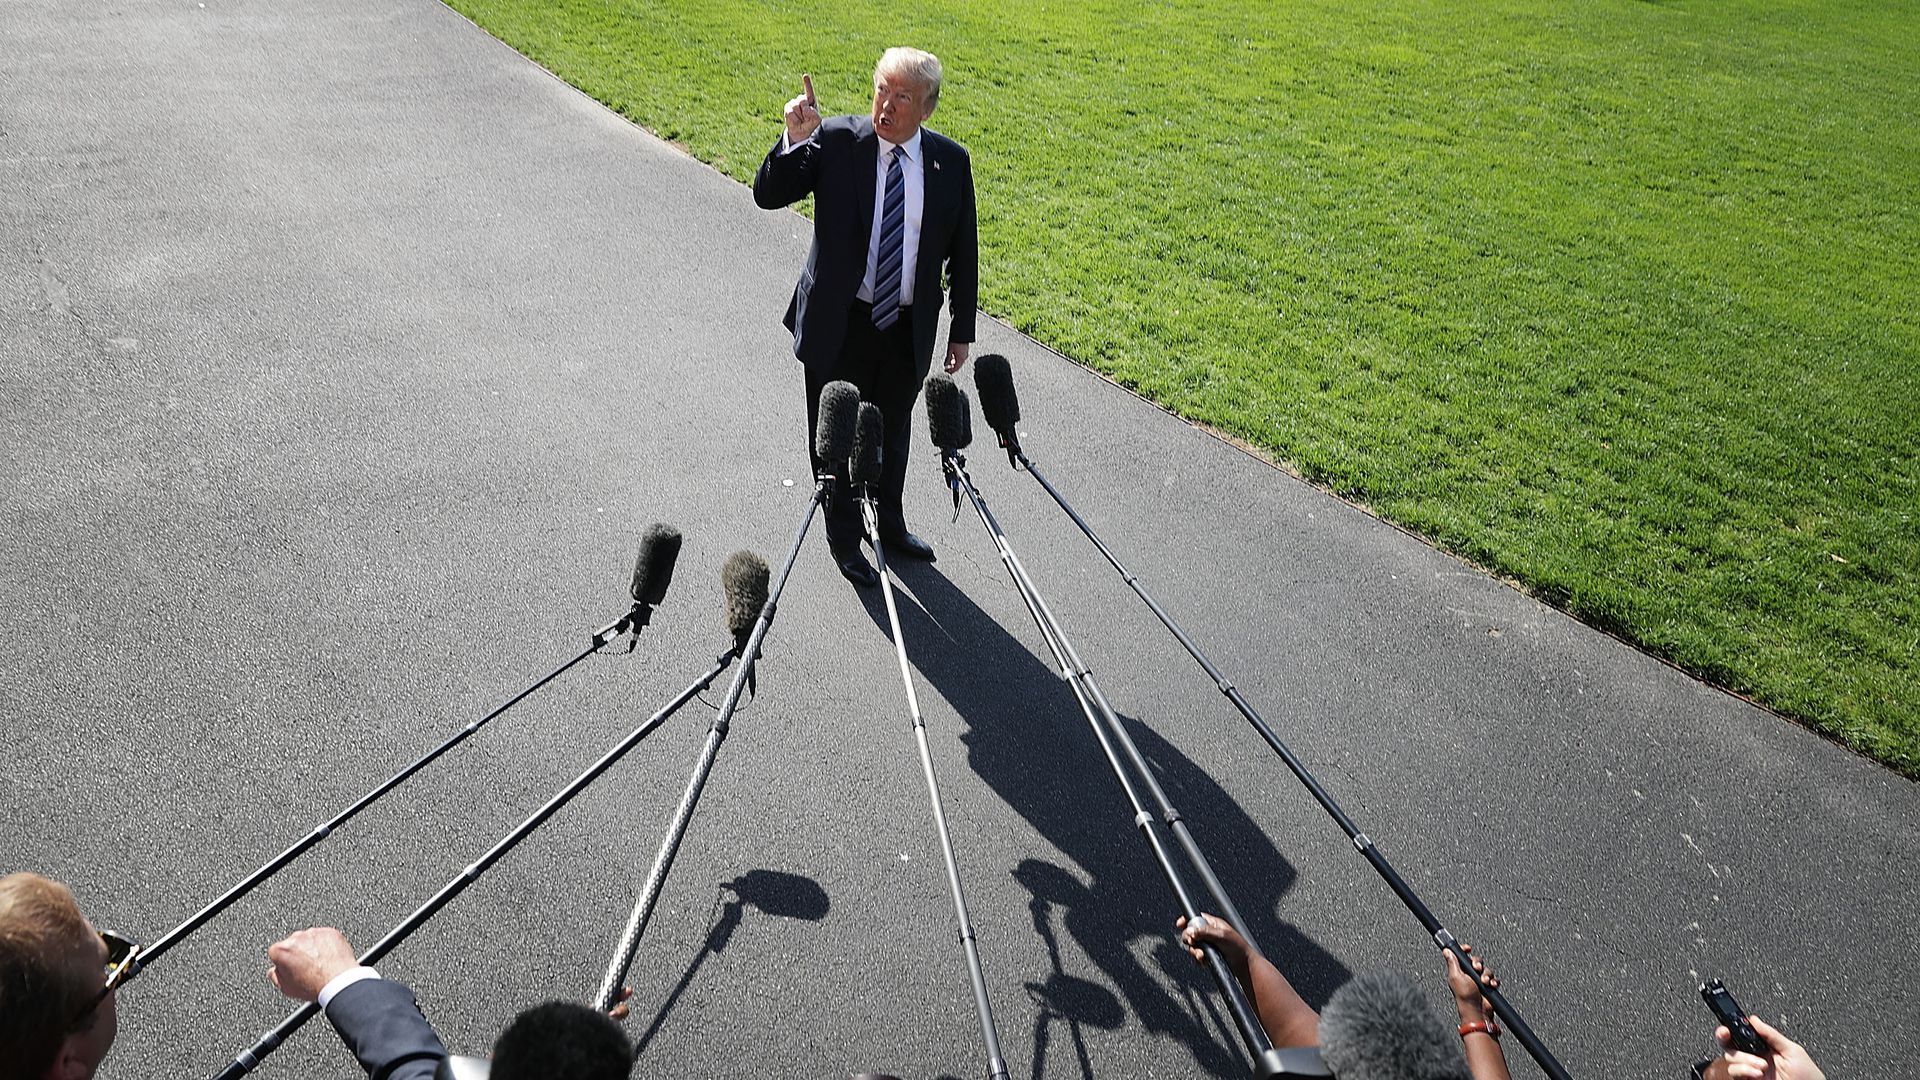 President Trump with his finger in the air talking to reporters